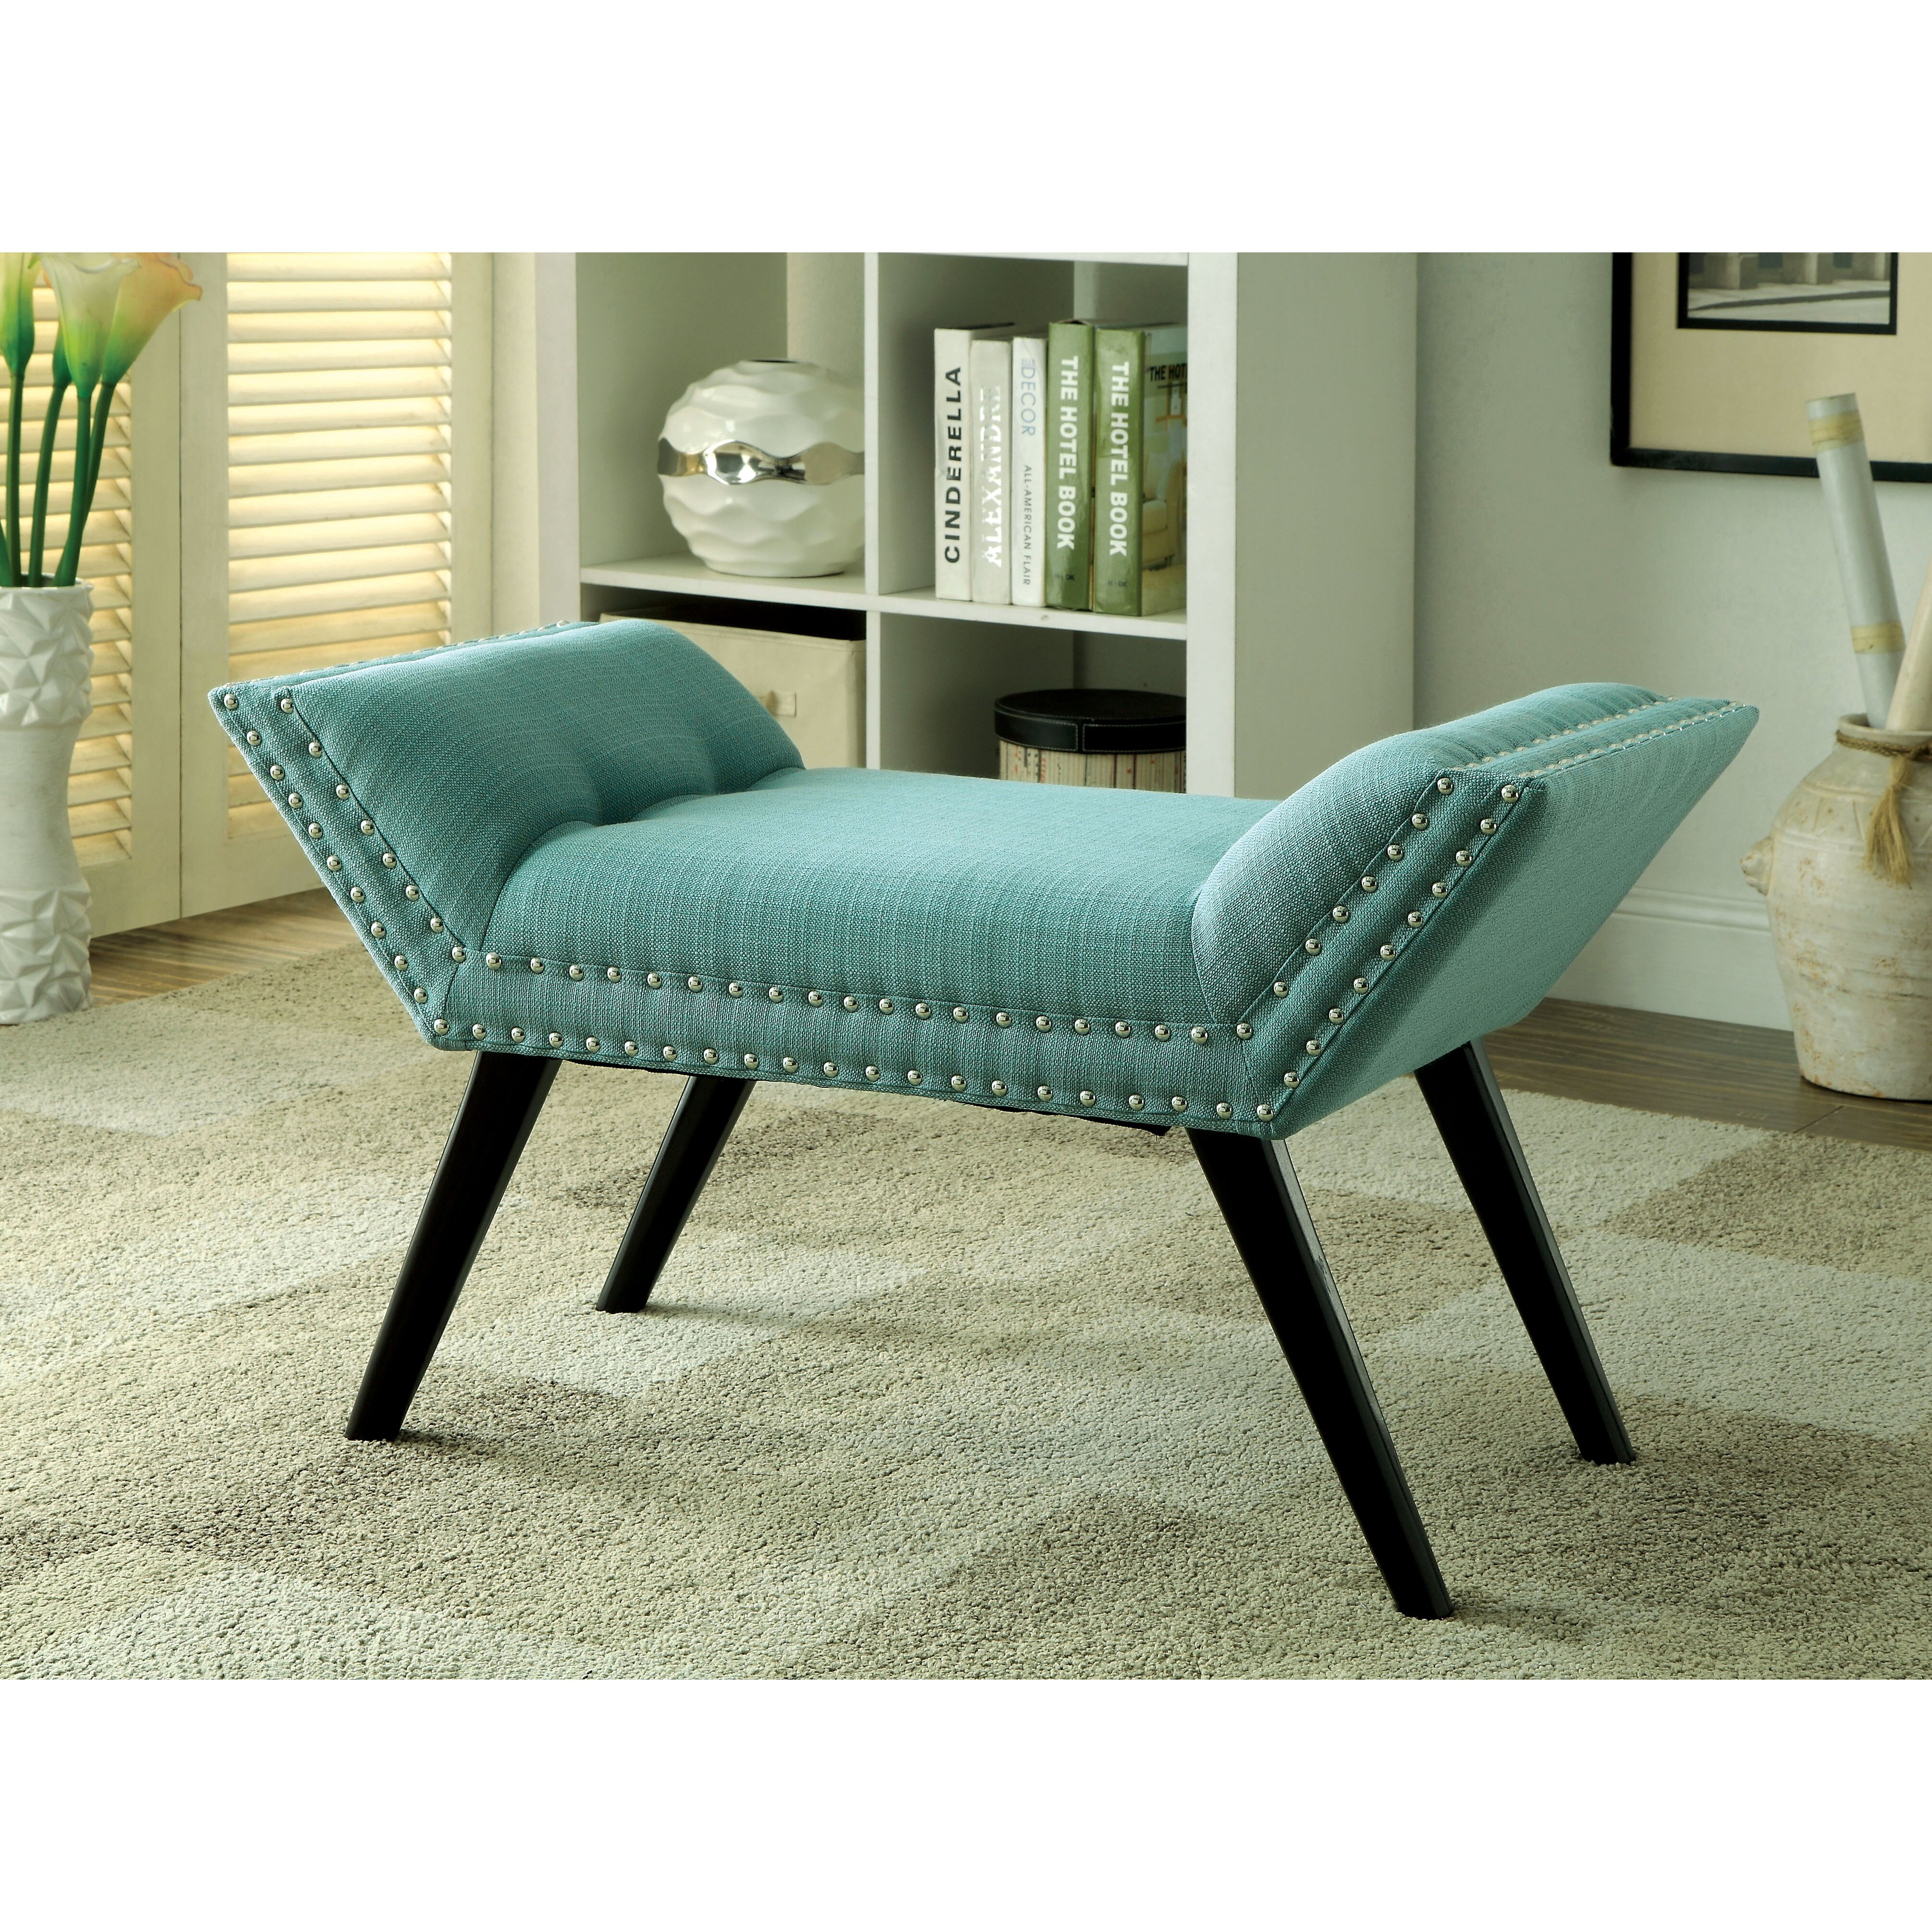 Leather Bedroom Bench Hokku Designs Linden Upholstered Bedroom Bench Reviews Wayfair